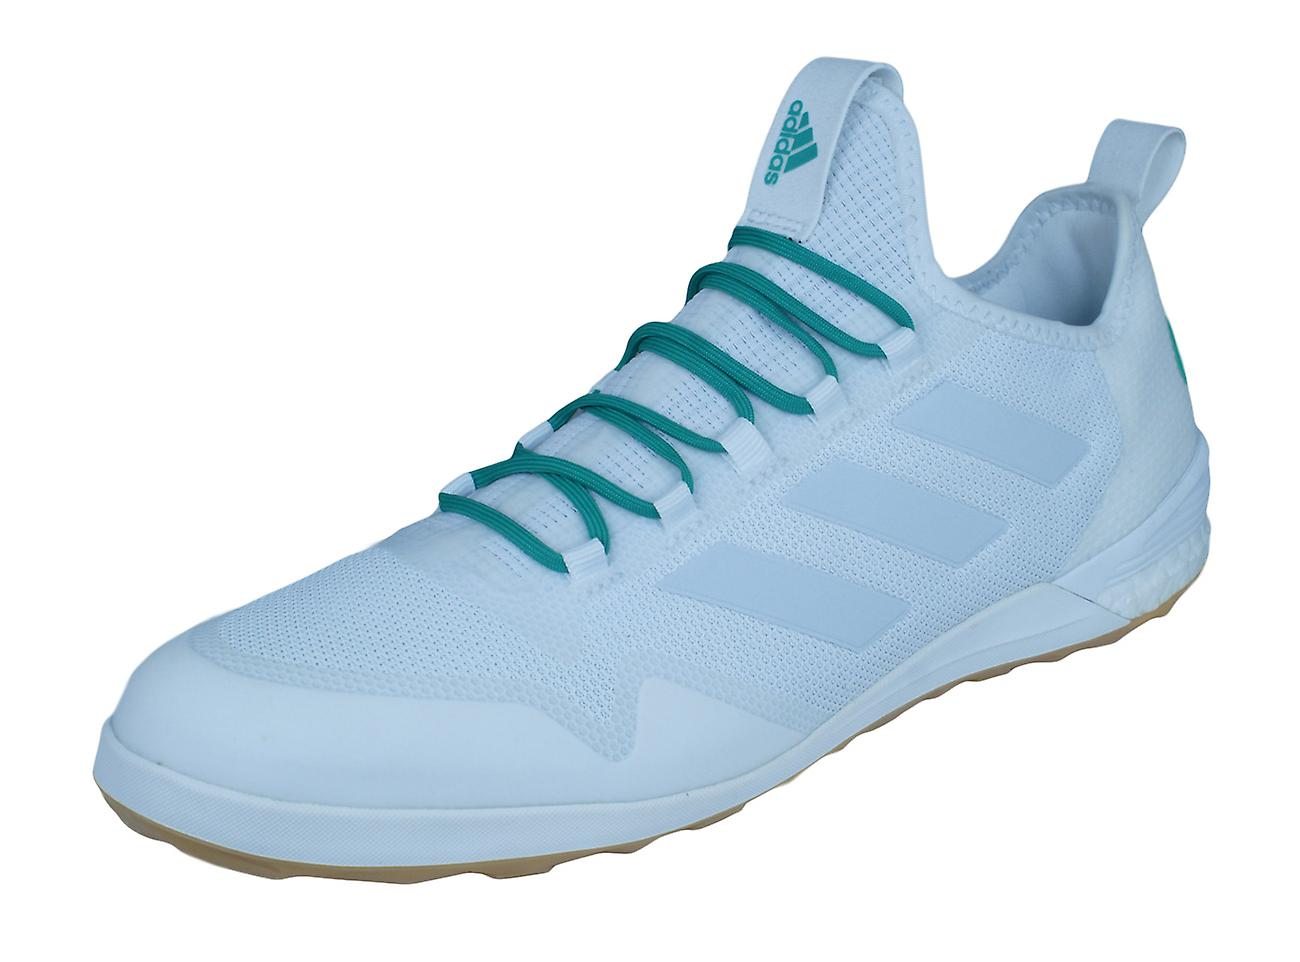 timeless design 5cdd1 b9867 adidas Ace Tango 17.1 IN Mens Indoor Football / Futsal Trainers - White